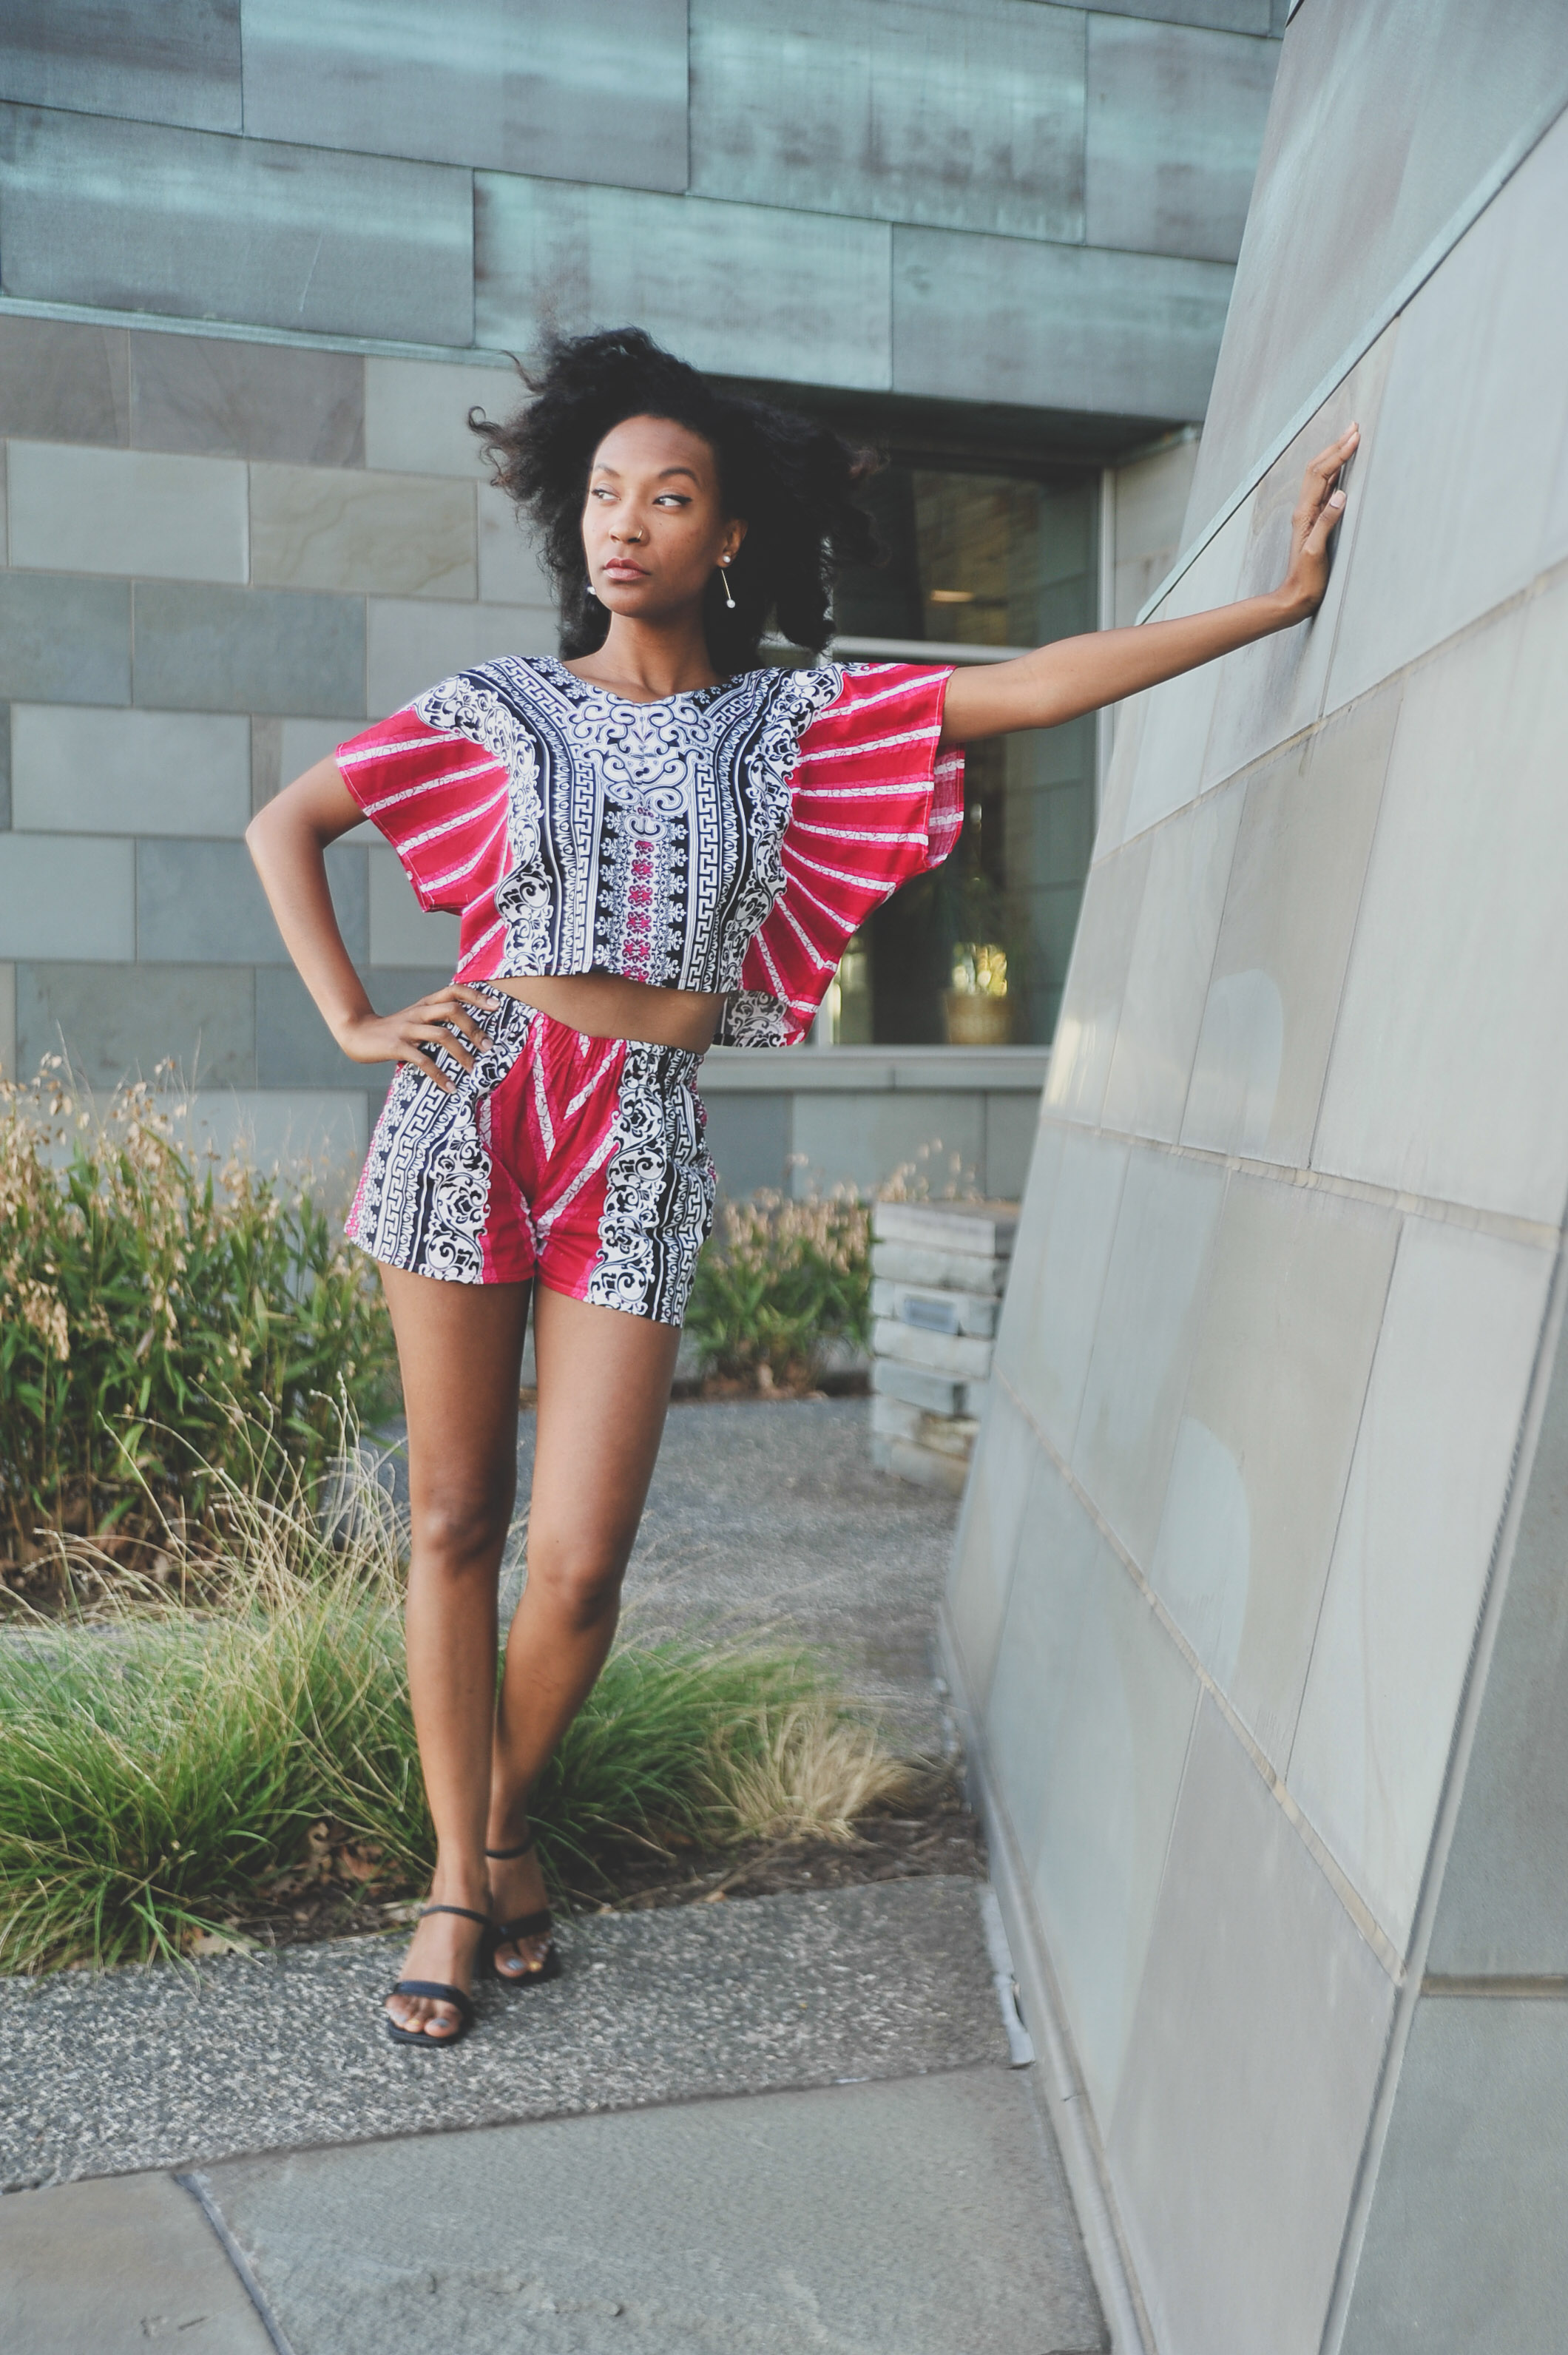 Alero Jasmine short set styled by Old World New - Cultural Appreciation